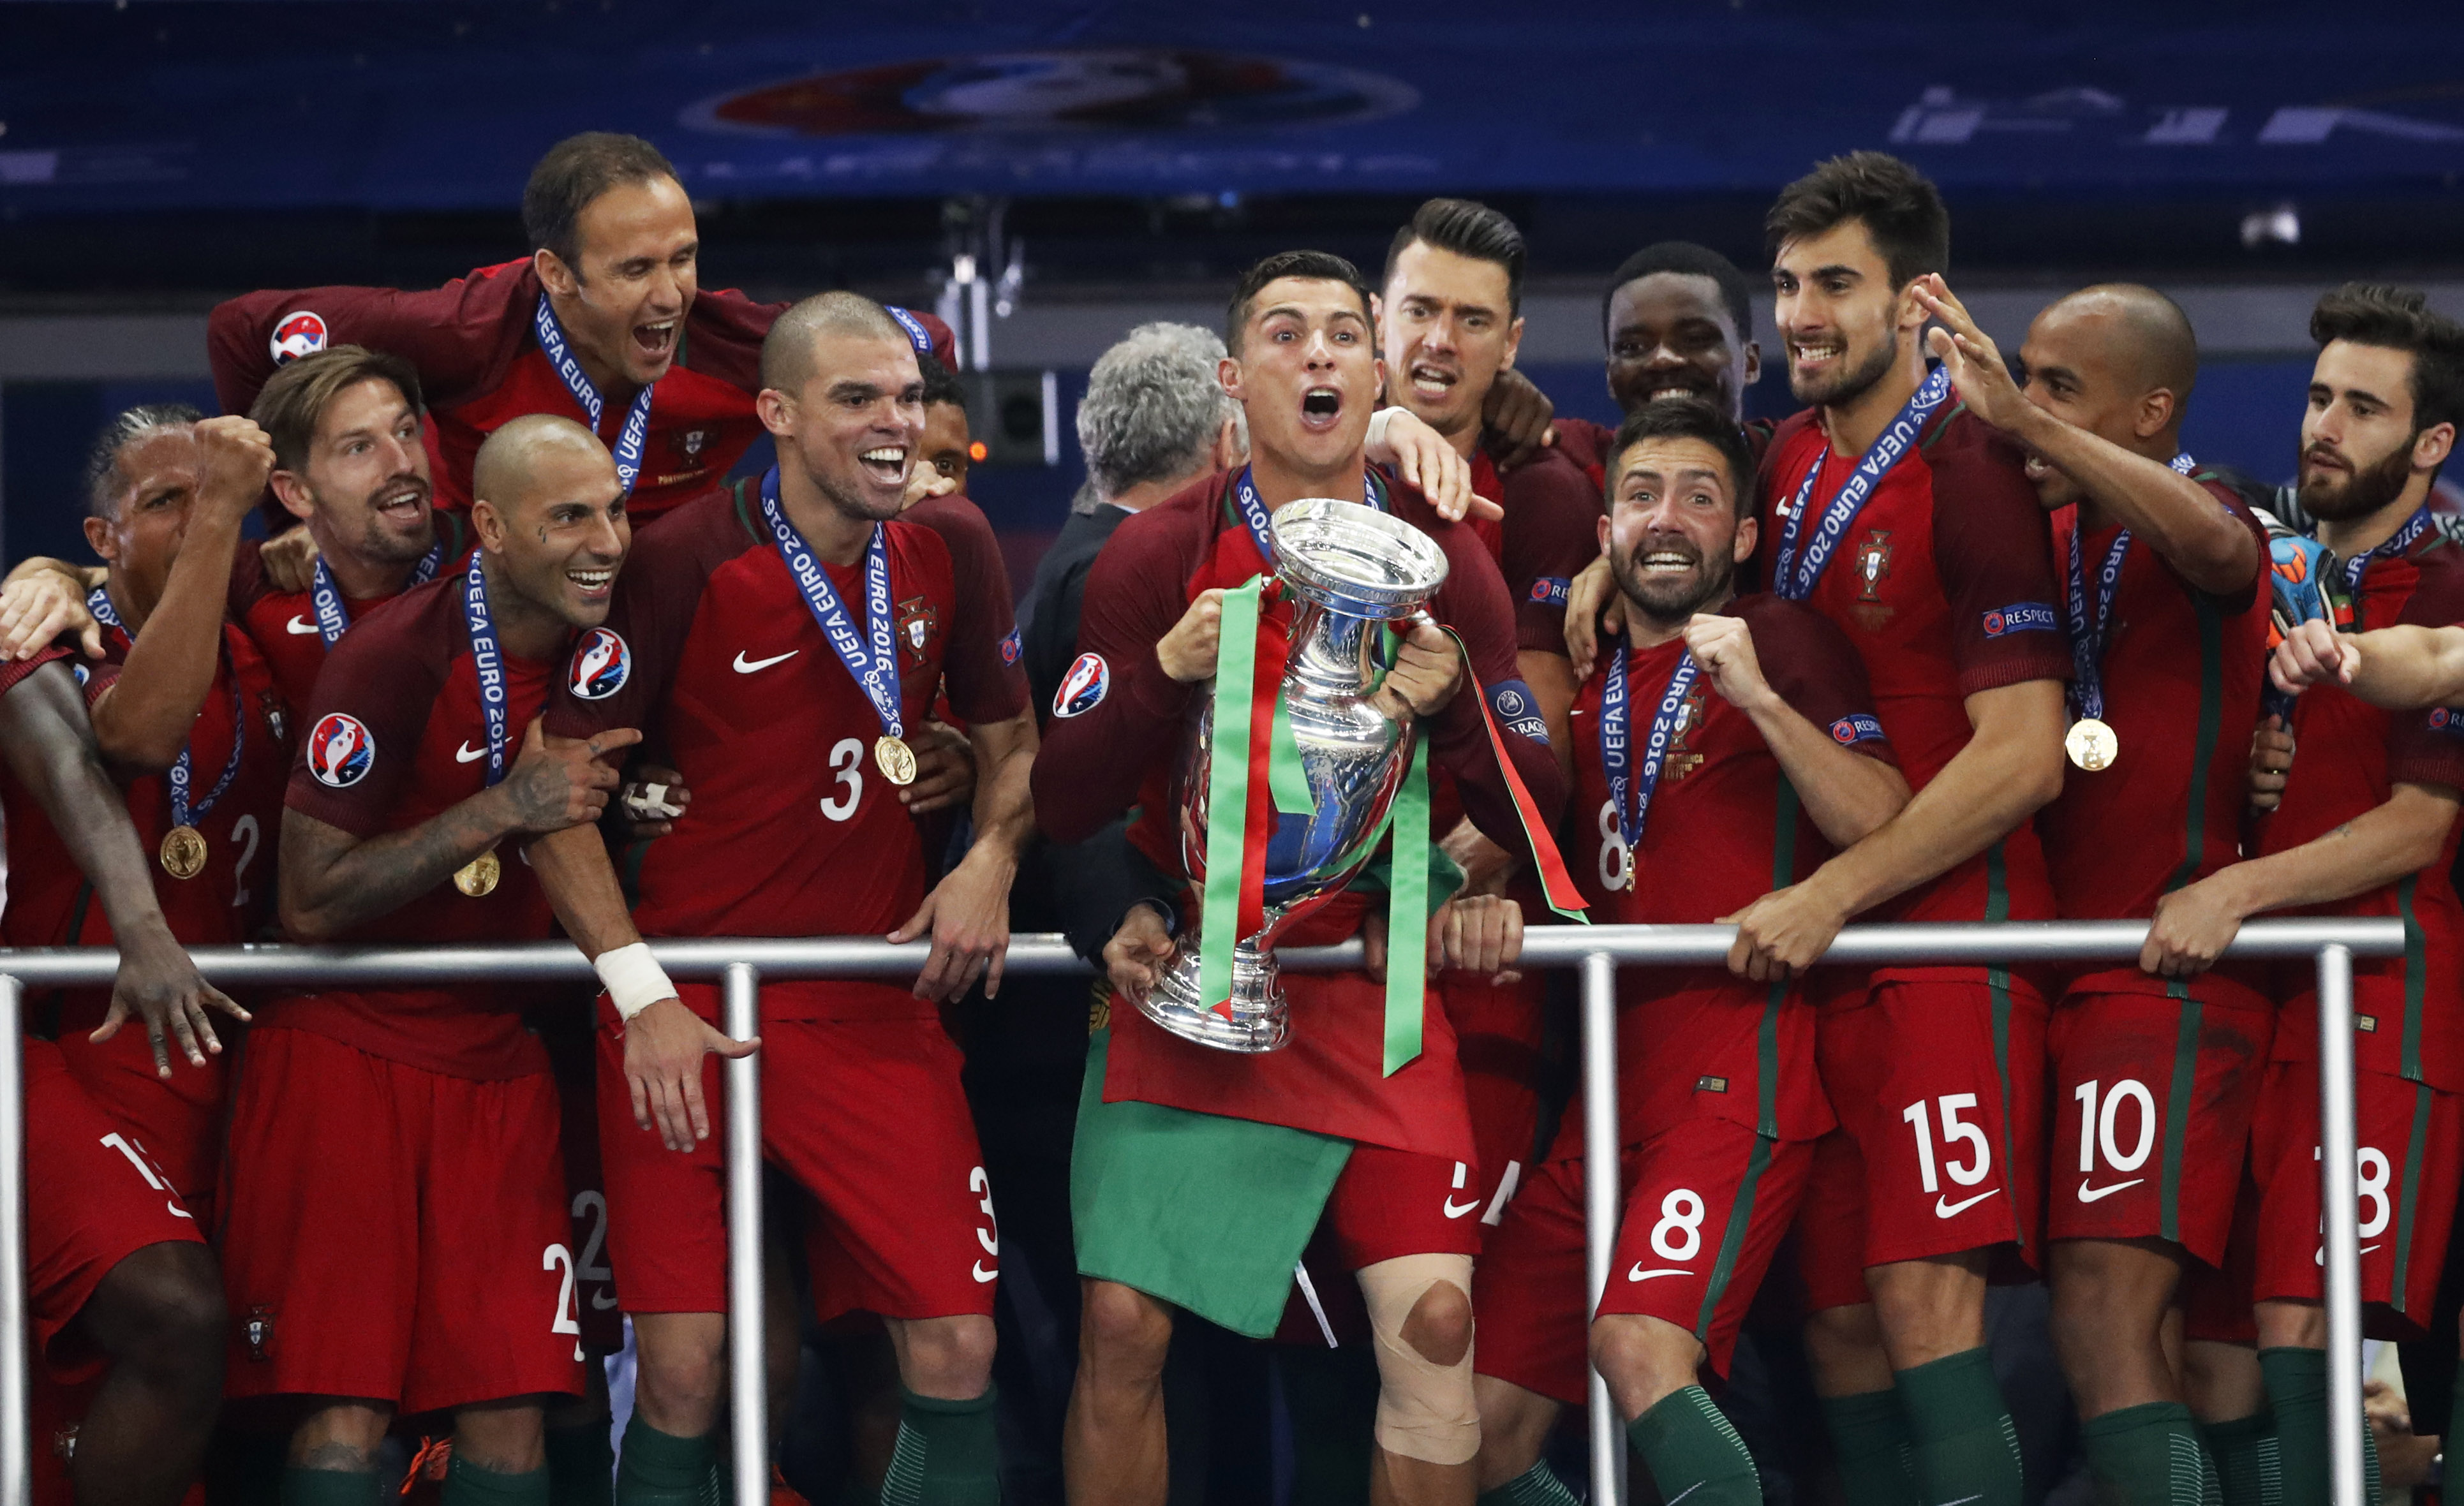 Portugal's Cristiano Ronaldo celebrates with team mates and the trophy after Portugal beat hosts France to win Euro 2016 at the Stade de France, Saint-Denis, near Paris on July 10, 2016.